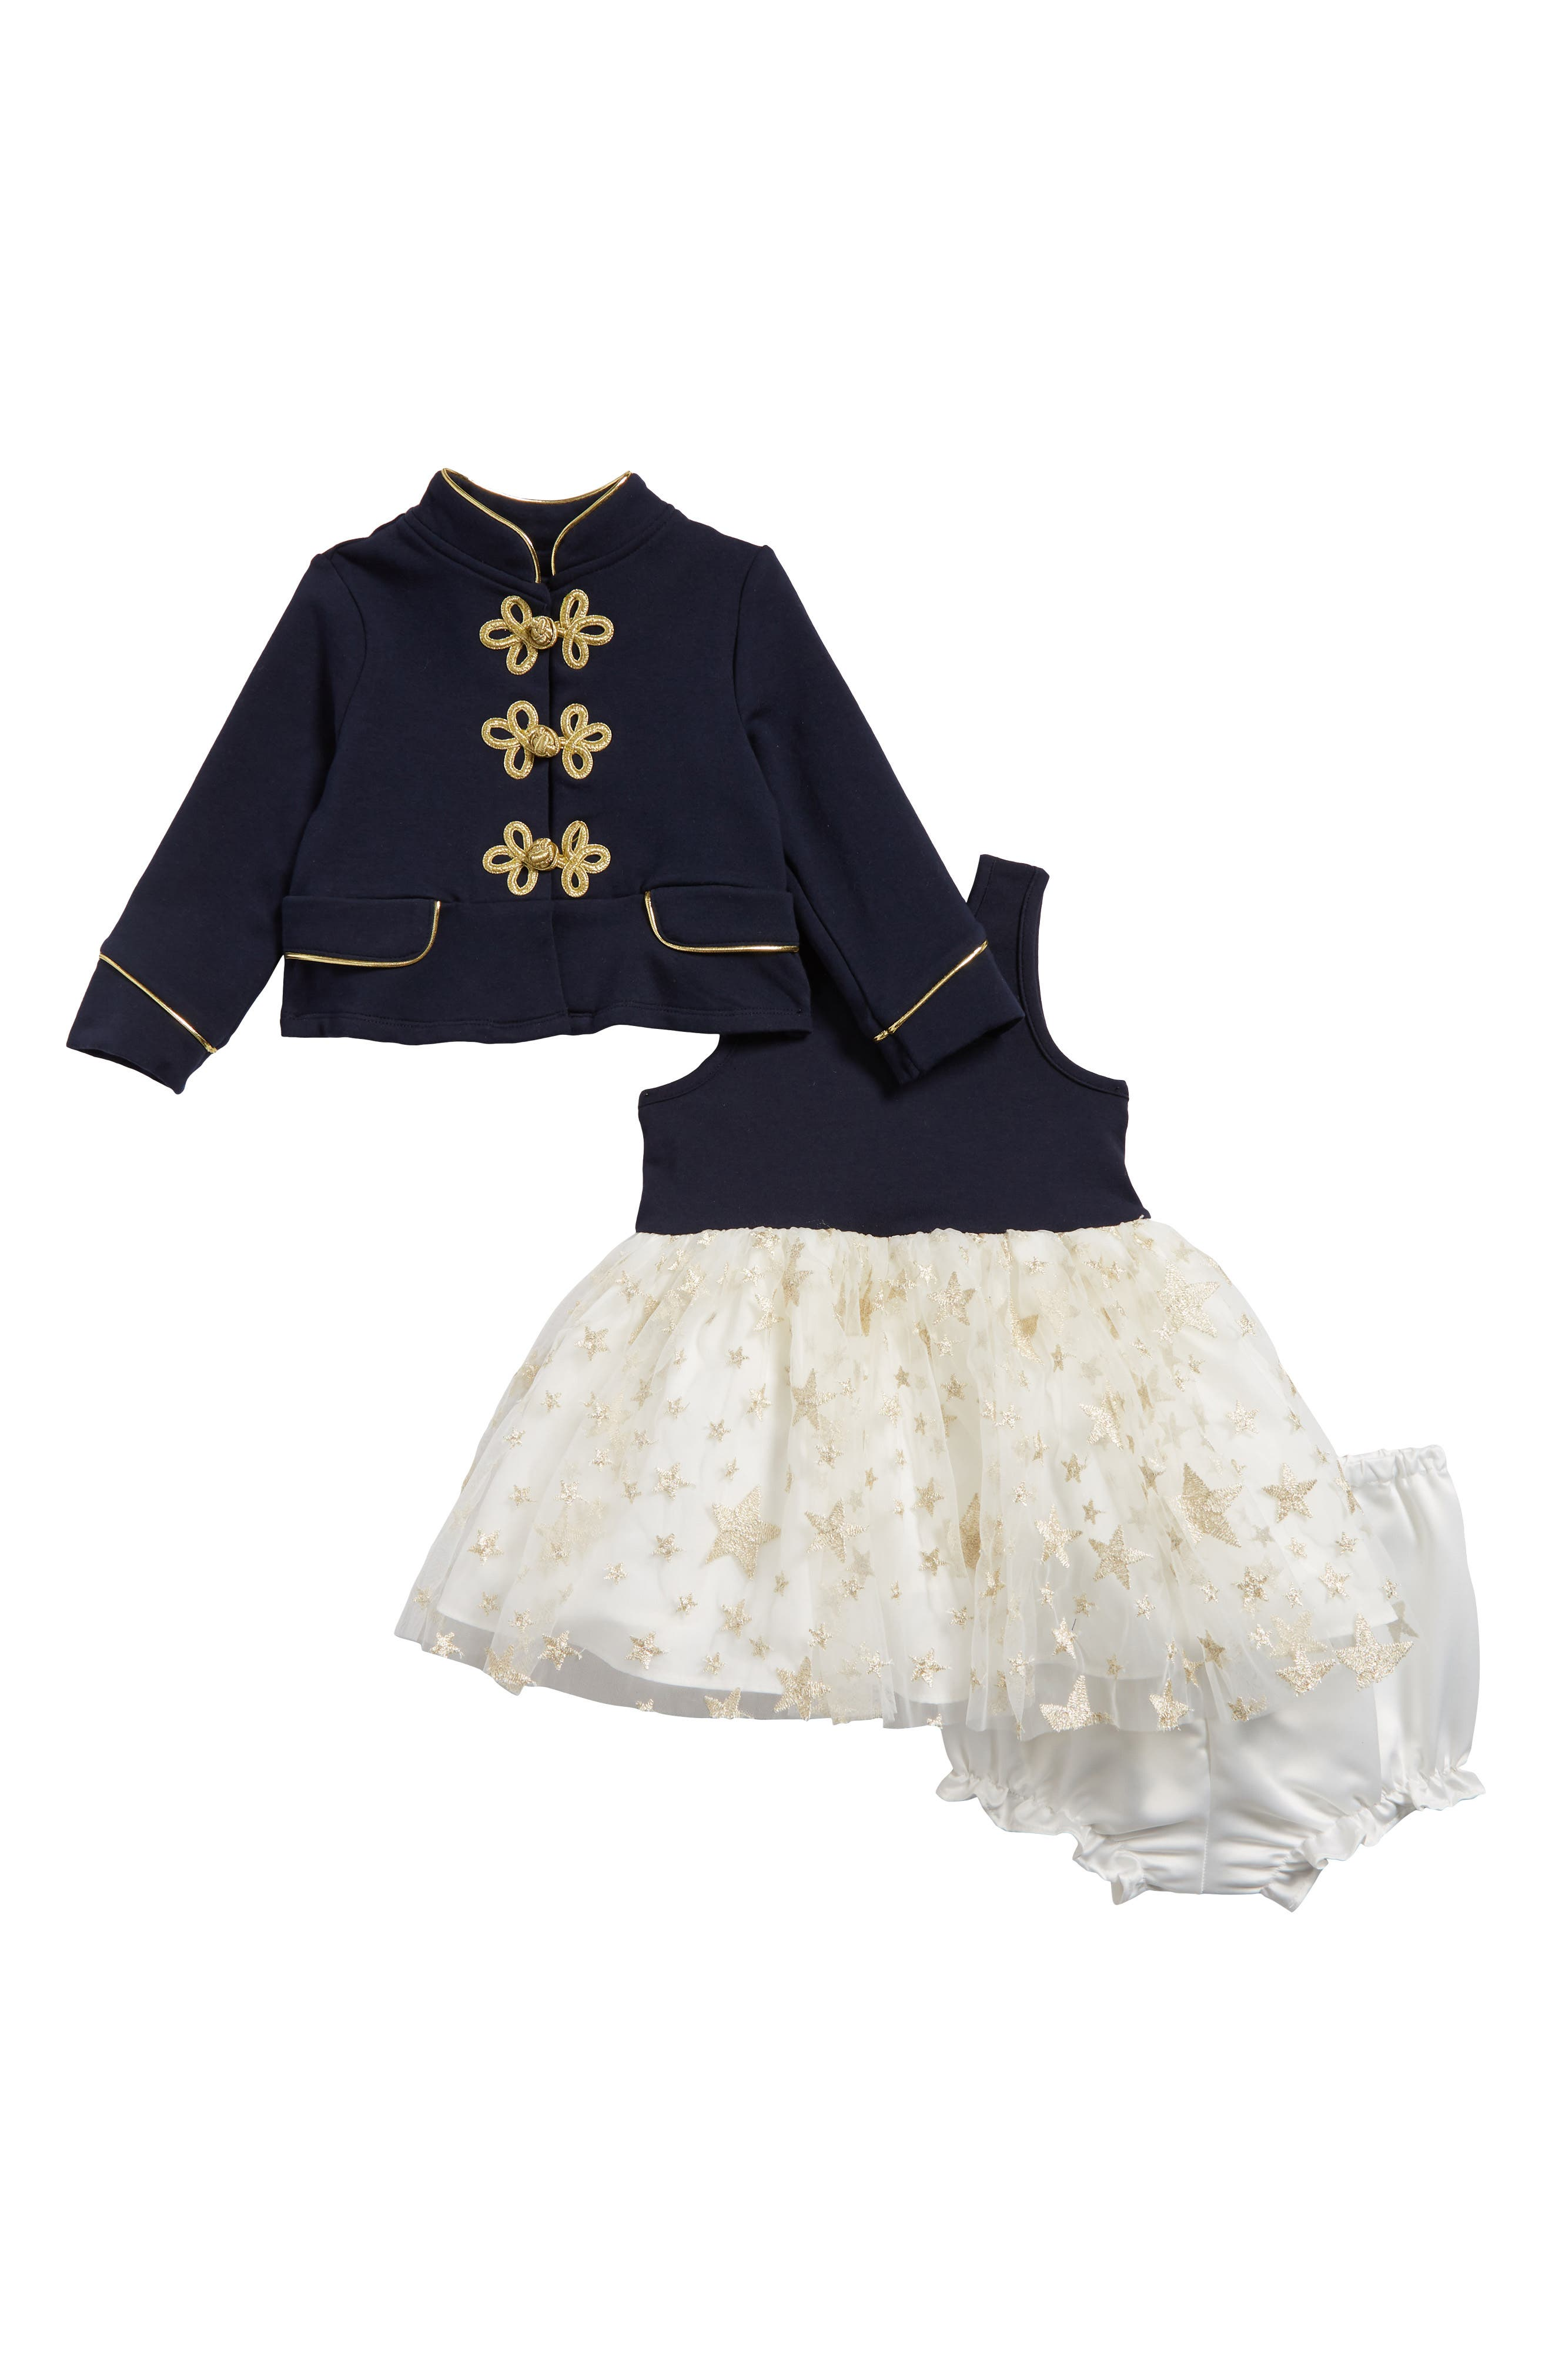 Majorette Jacket & Tank Dress Set,                             Main thumbnail 1, color,                             NAVY/ GOLD